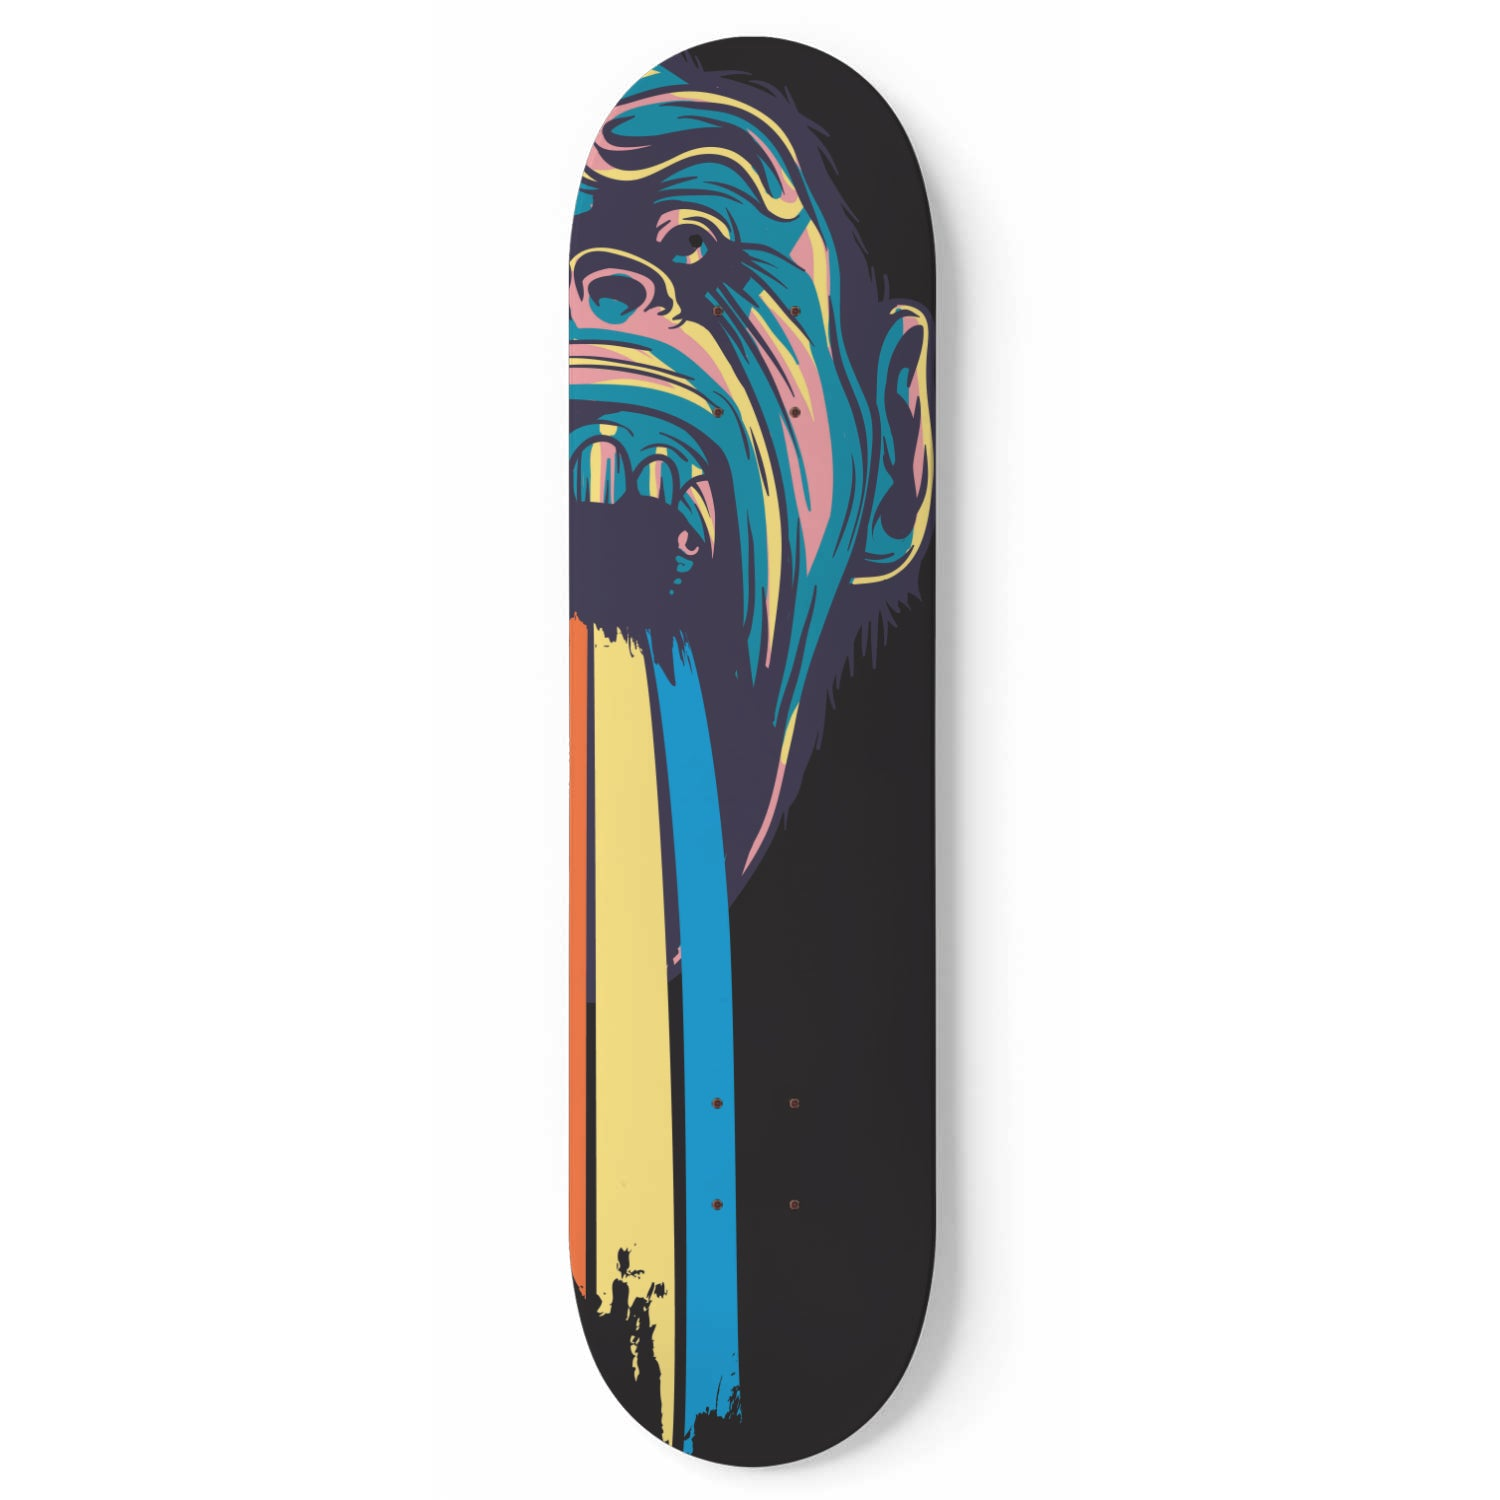 Le single arc en ciel droit - Skateboard